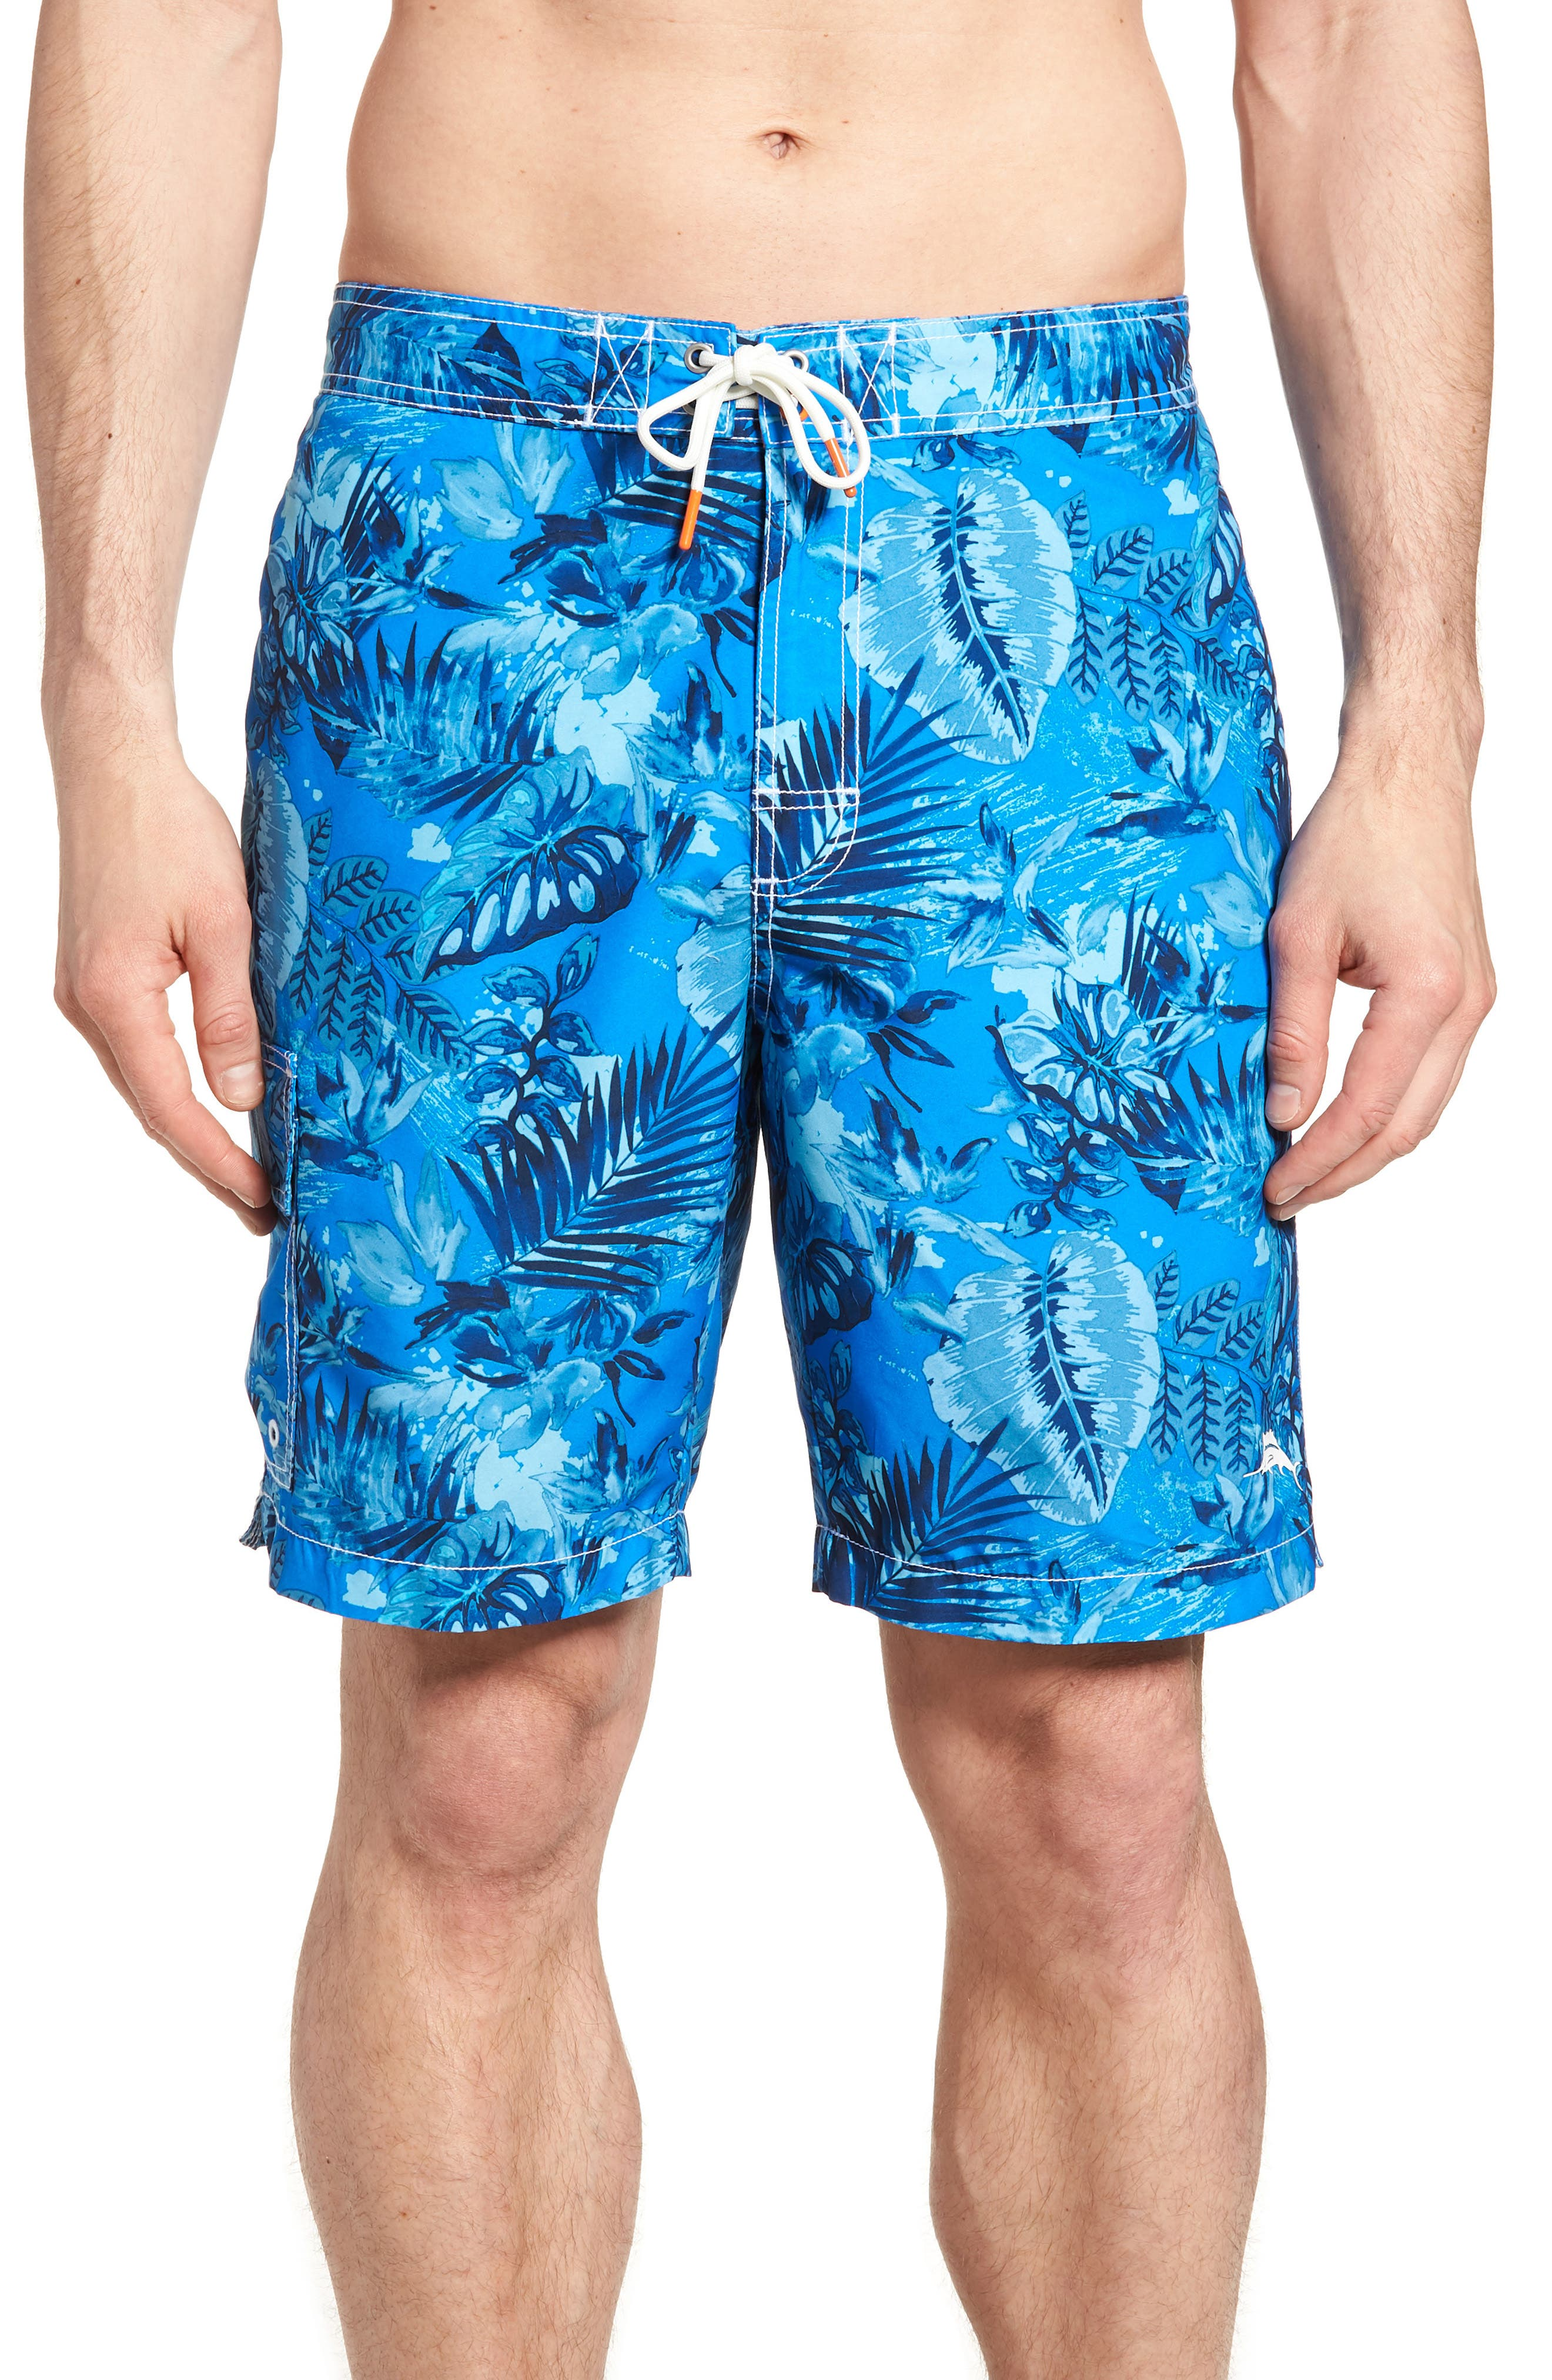 Baja Selva Shores Board Shorts,                         Main,                         color, Blue Spark